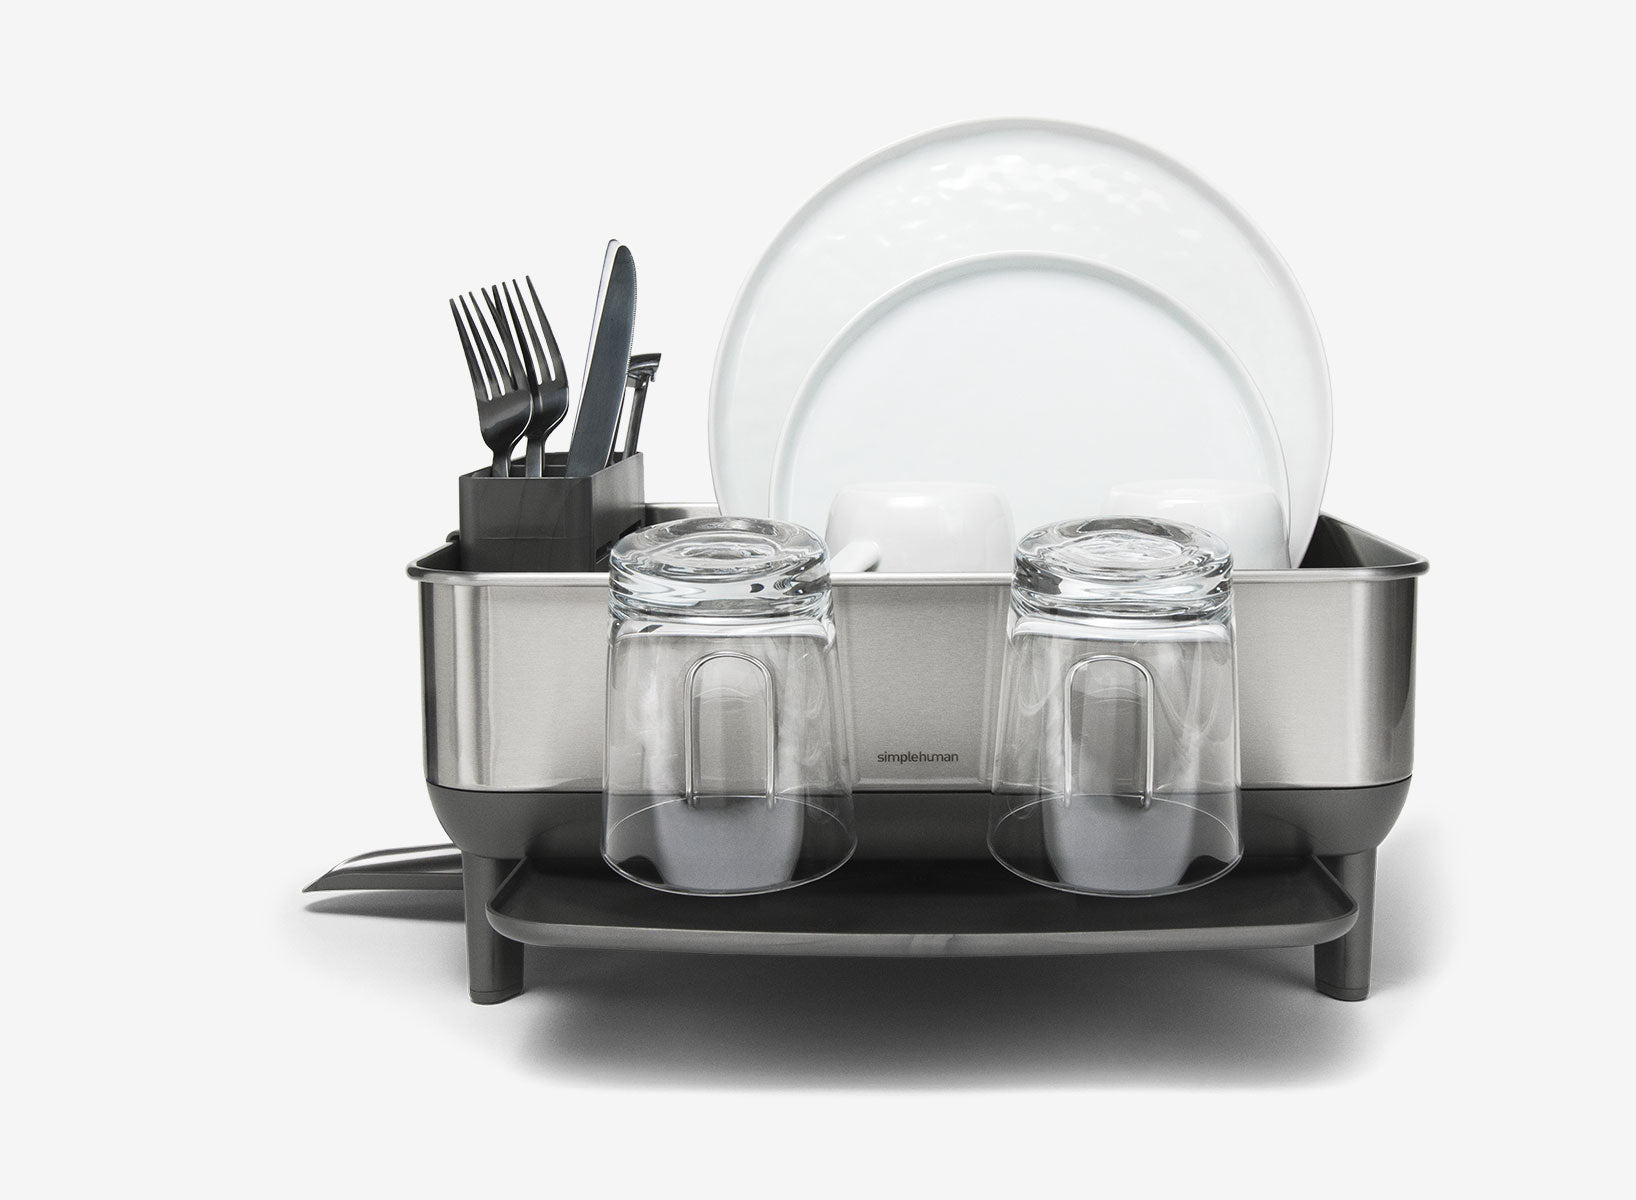 large capacity dishrack allows for many dishes to be piled in